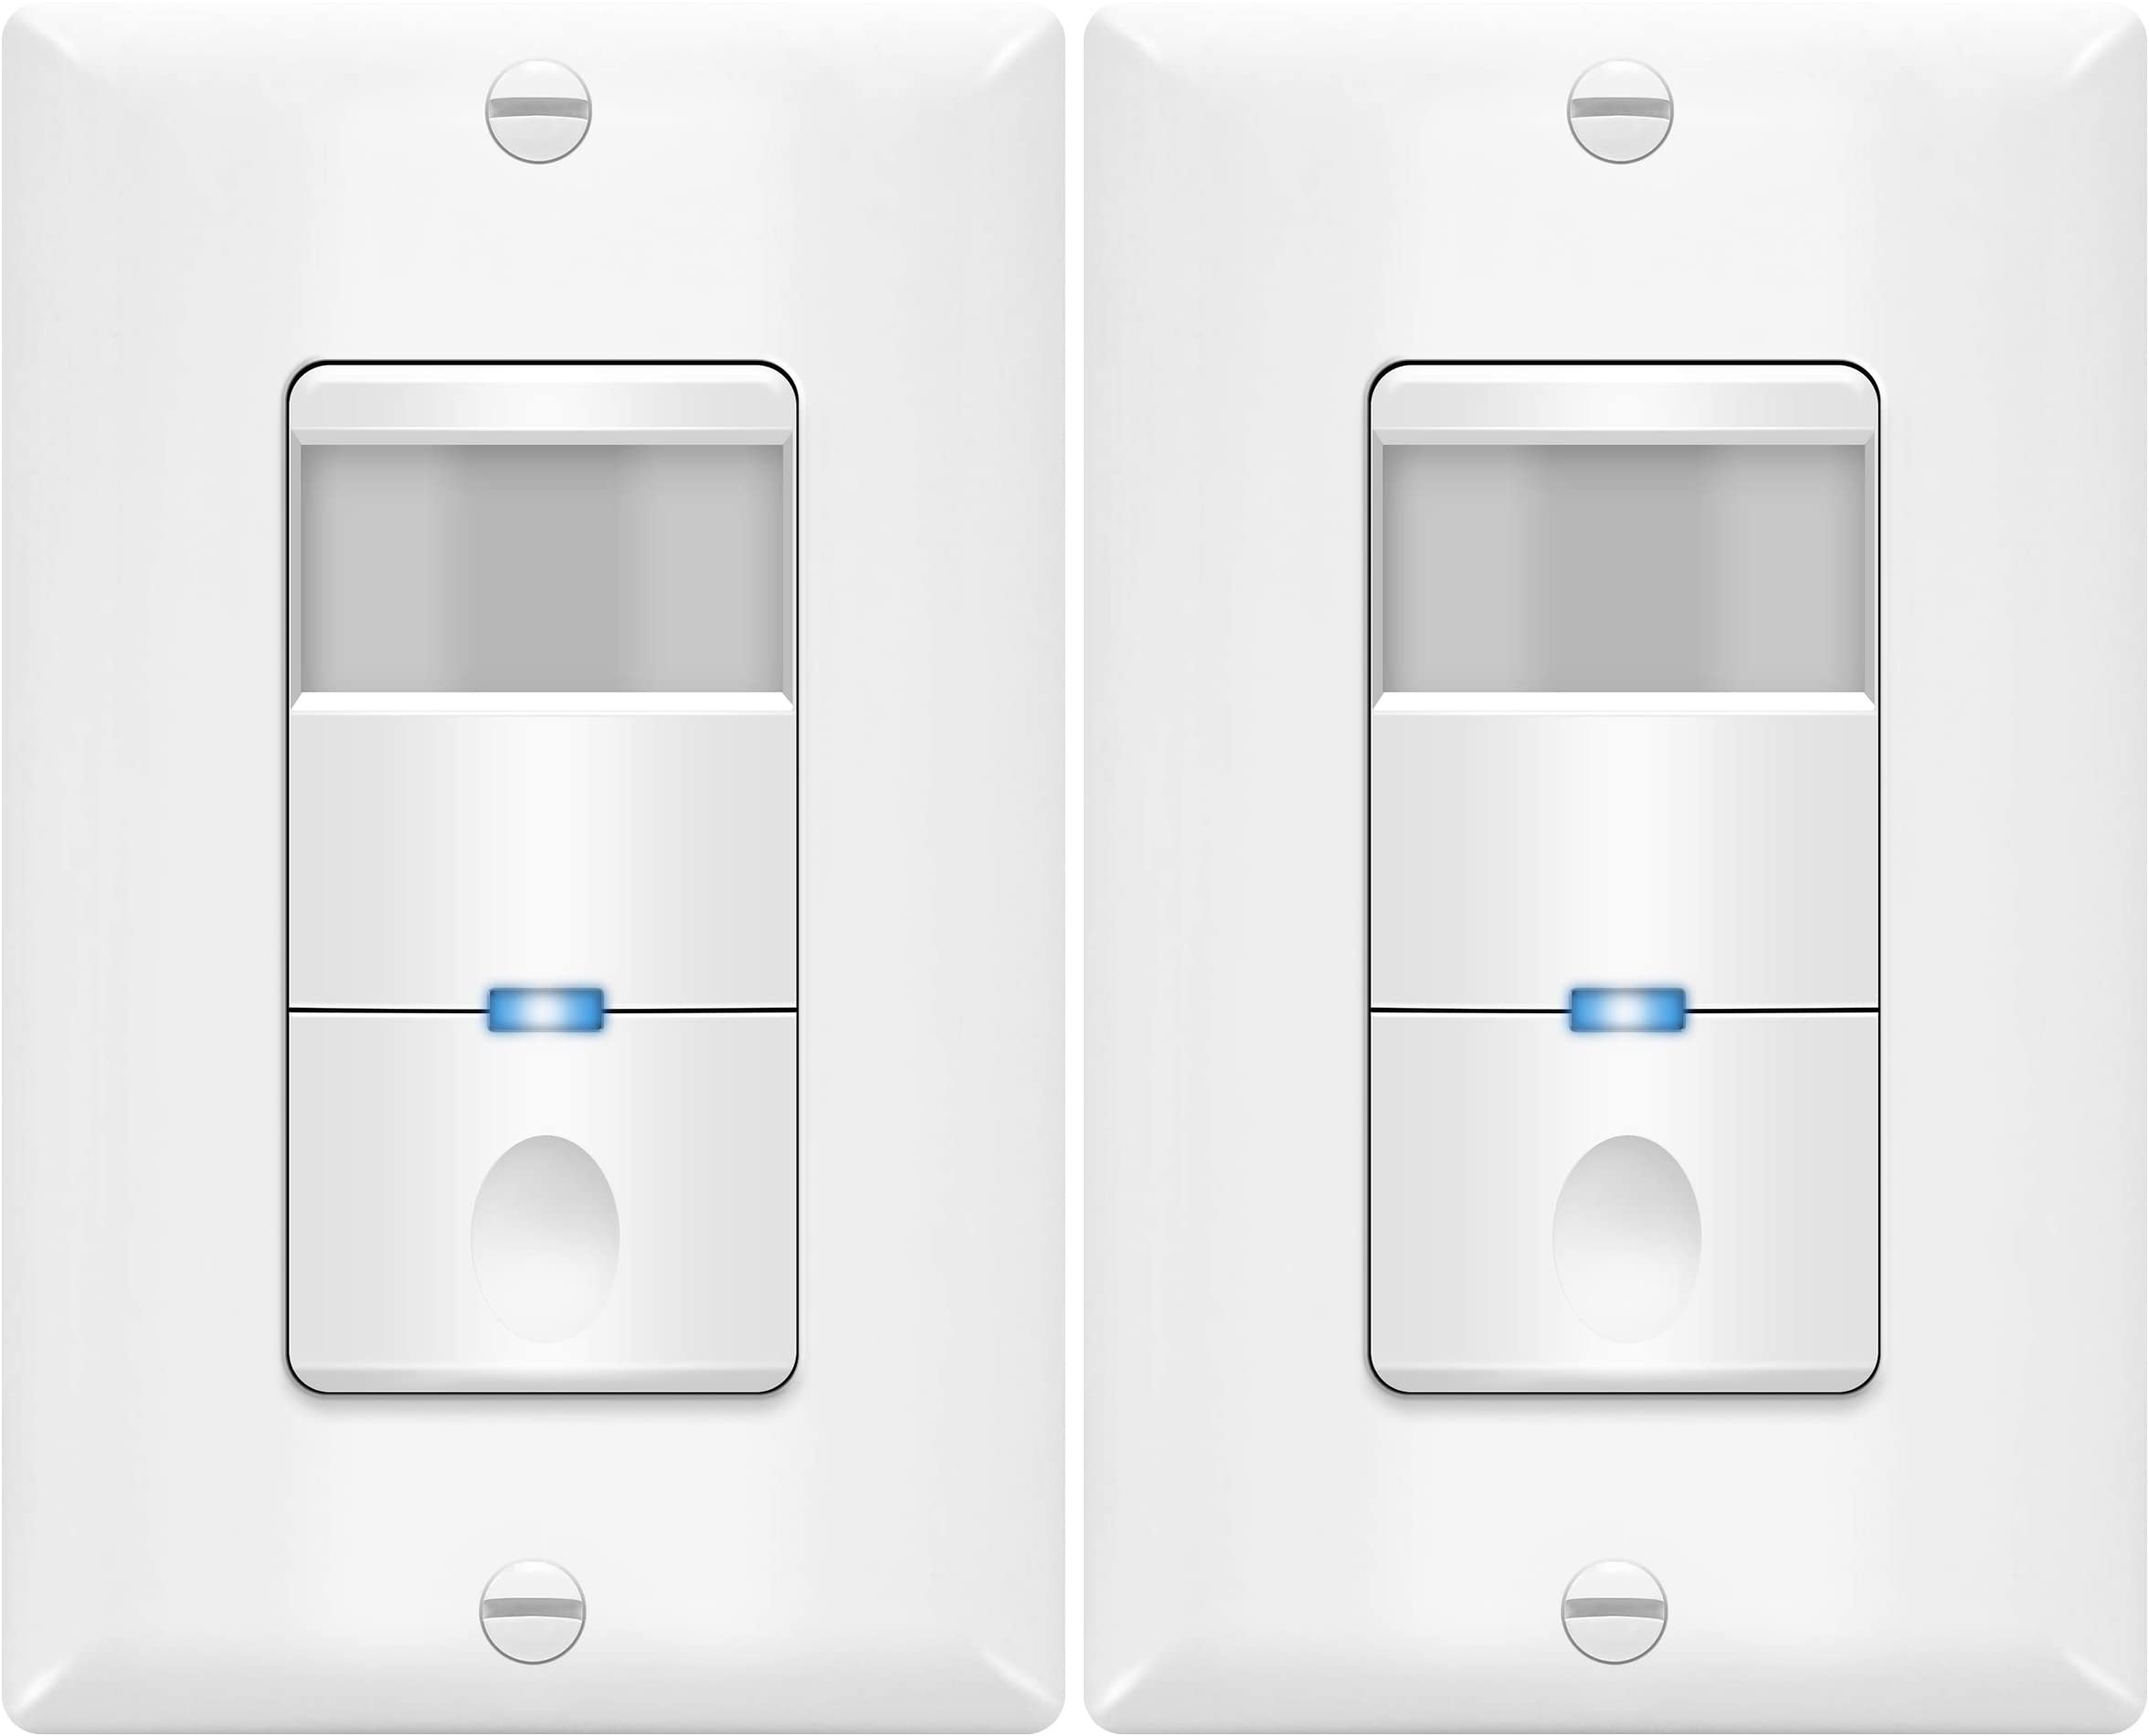 TOPGREENER Motion Sensor Switch, PIR Sensor Light Switch, Occupancy & Vacancy Modes, No Neutral Wire Required, Ground Wire Required, 4A, 250W LED/CFL, Single Pole, TDOS5-J-W-2PCS, White, 2 Pack